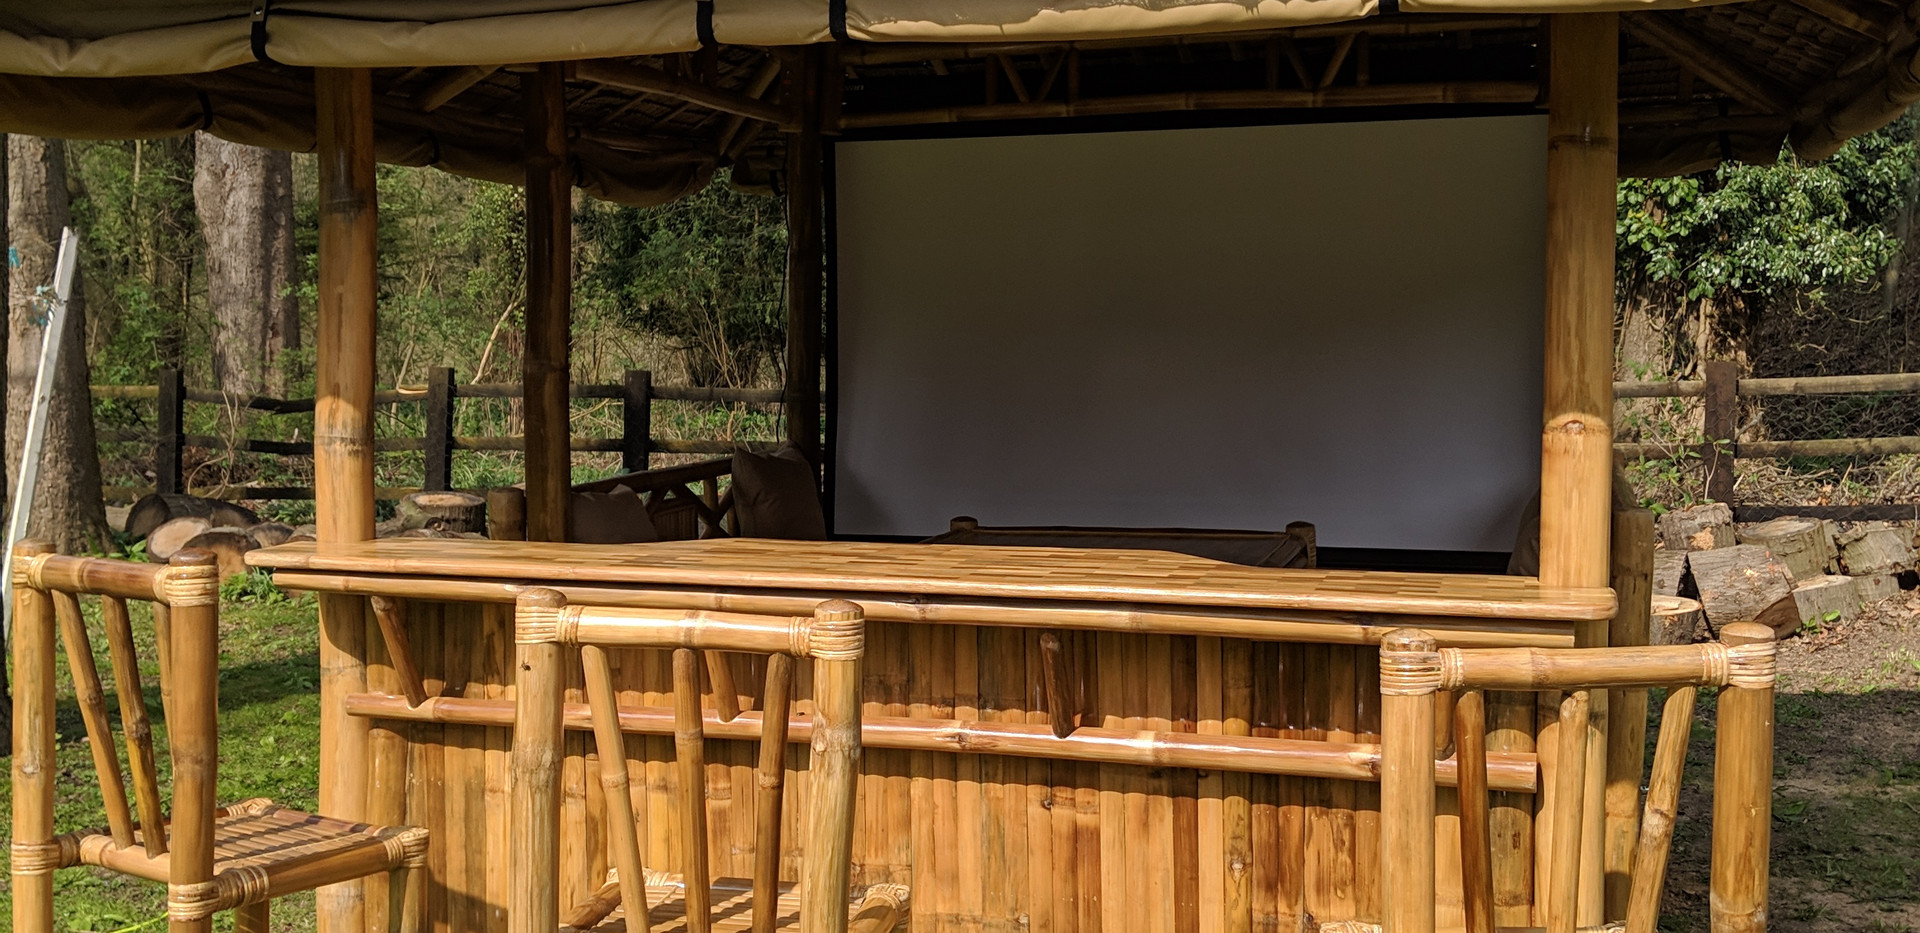 Bar Gazebo installed with Projector